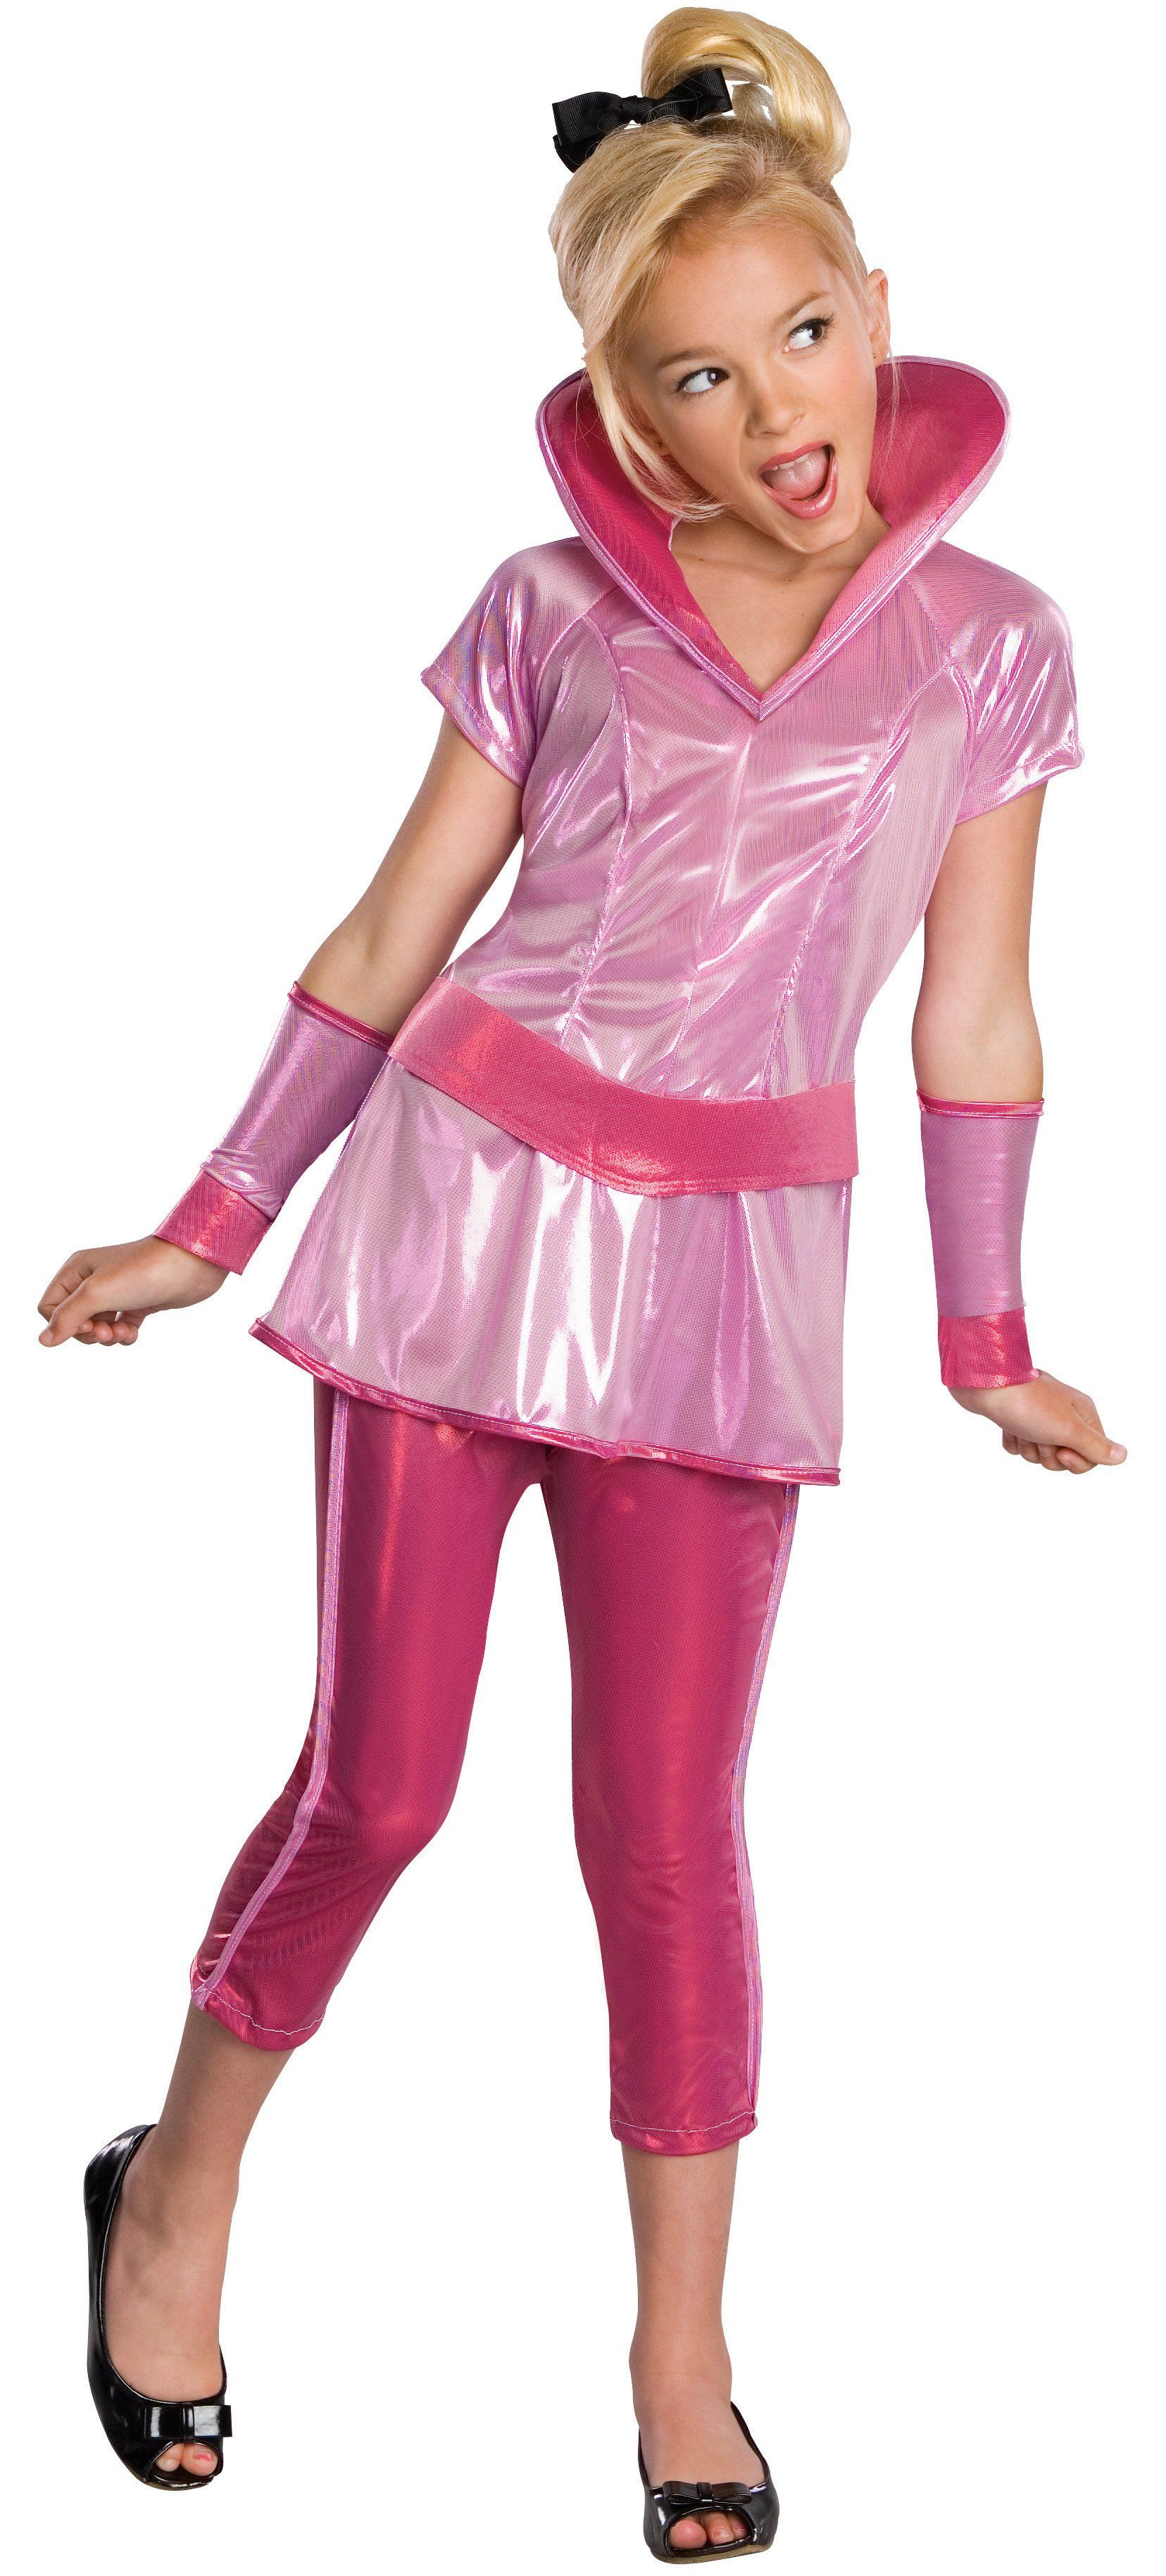 The Jetsons Judy Jetson Child Costume from BuyCostumes.com